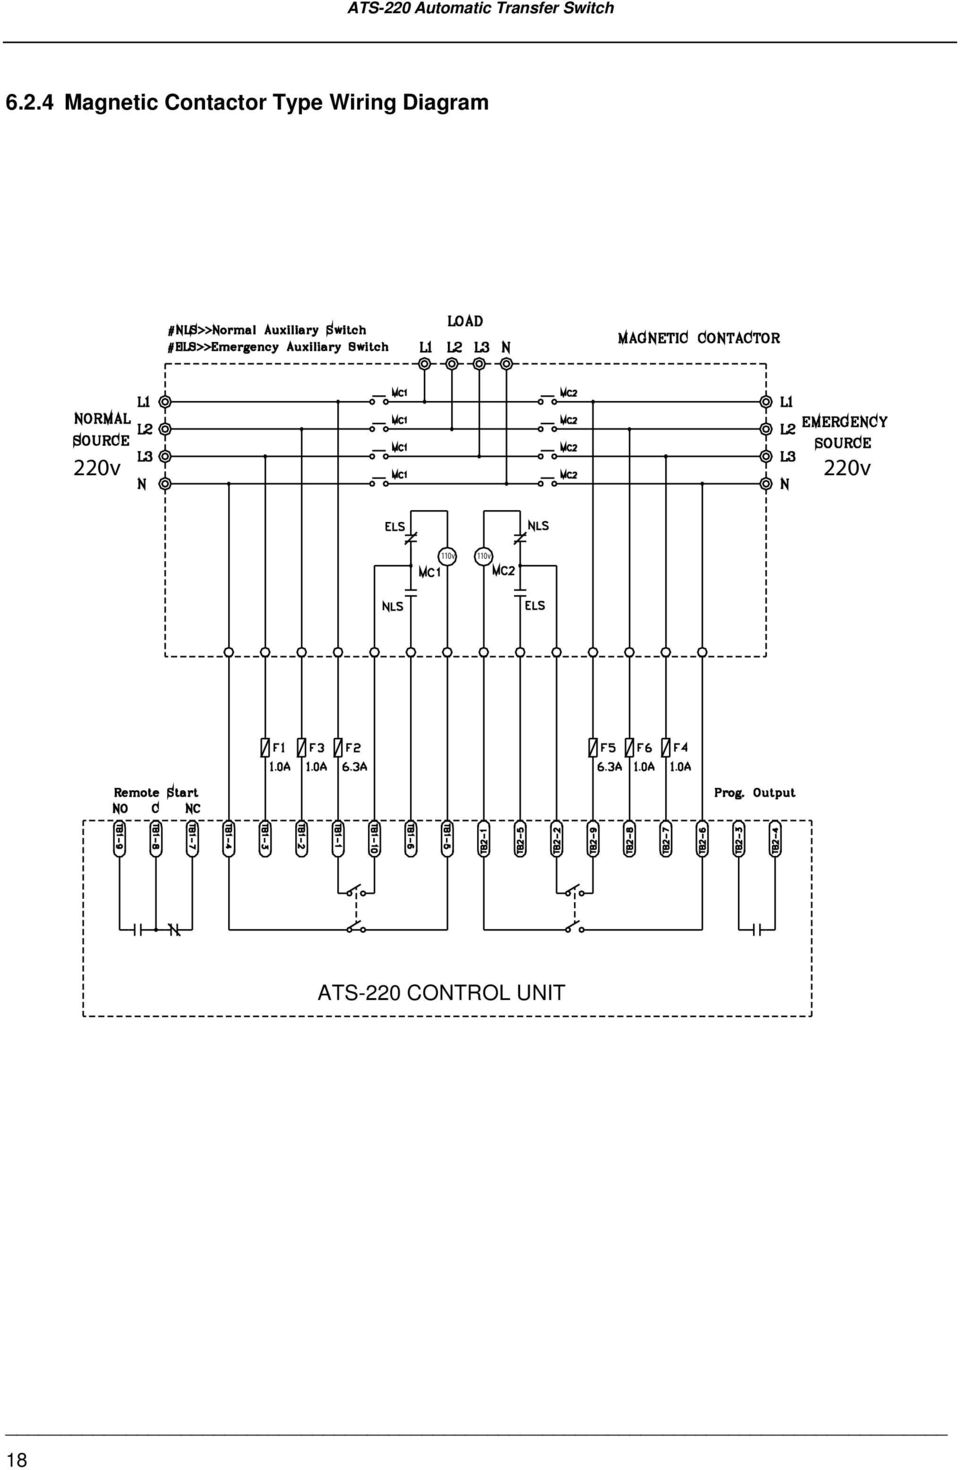 double throw transfer switch wiring diagram wiring library rh uitgeverijdewereld nl